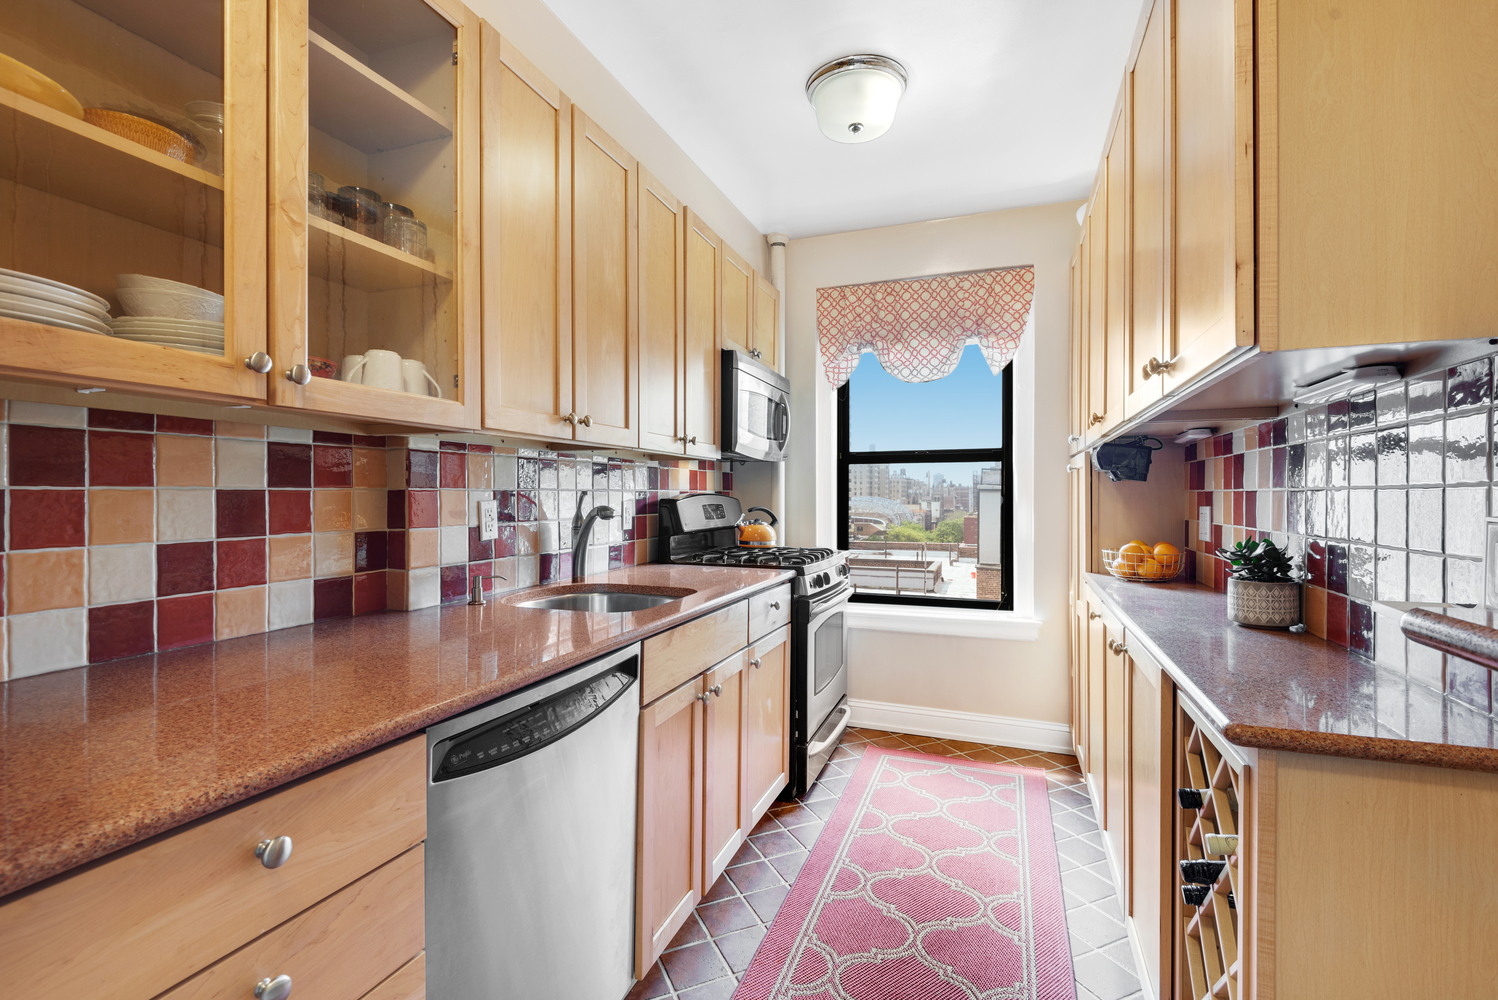 CSG_35_West_92nd_Street_9F_New_York_NY_Corcoran_-_Package_of_4_Property_Photos_2_20190521-104642.jpg